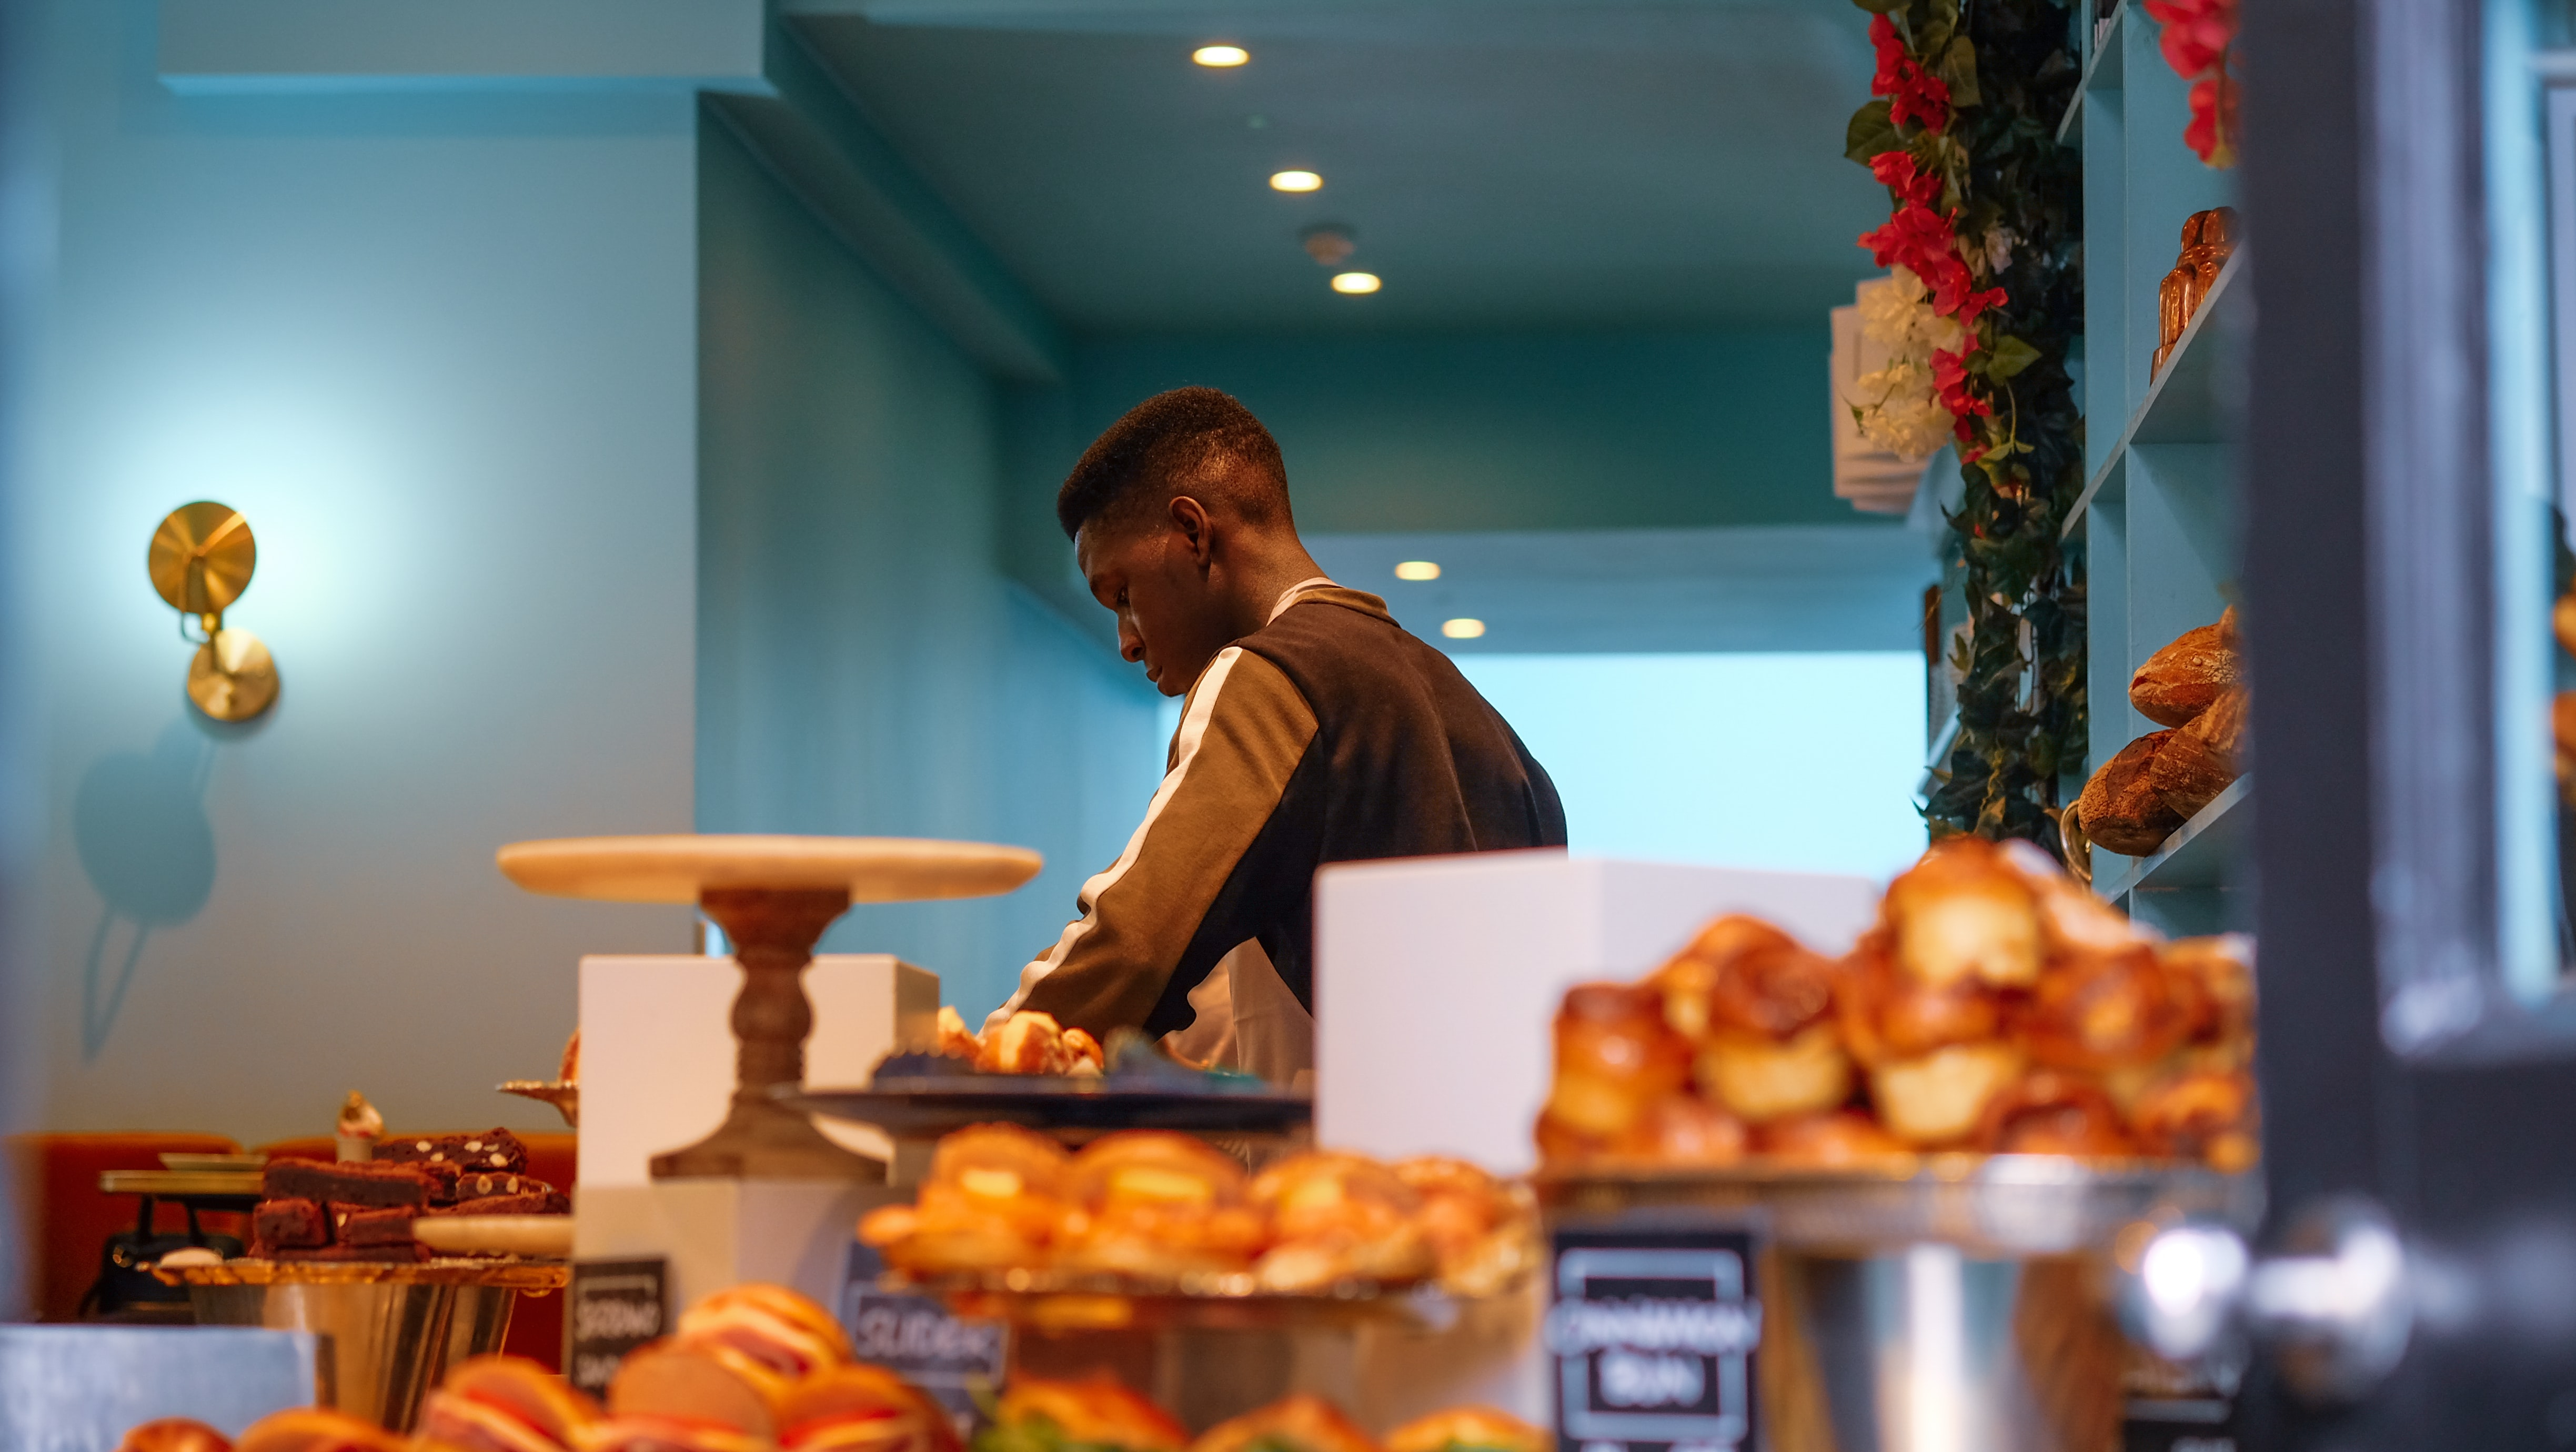 man standing near pastry dishes